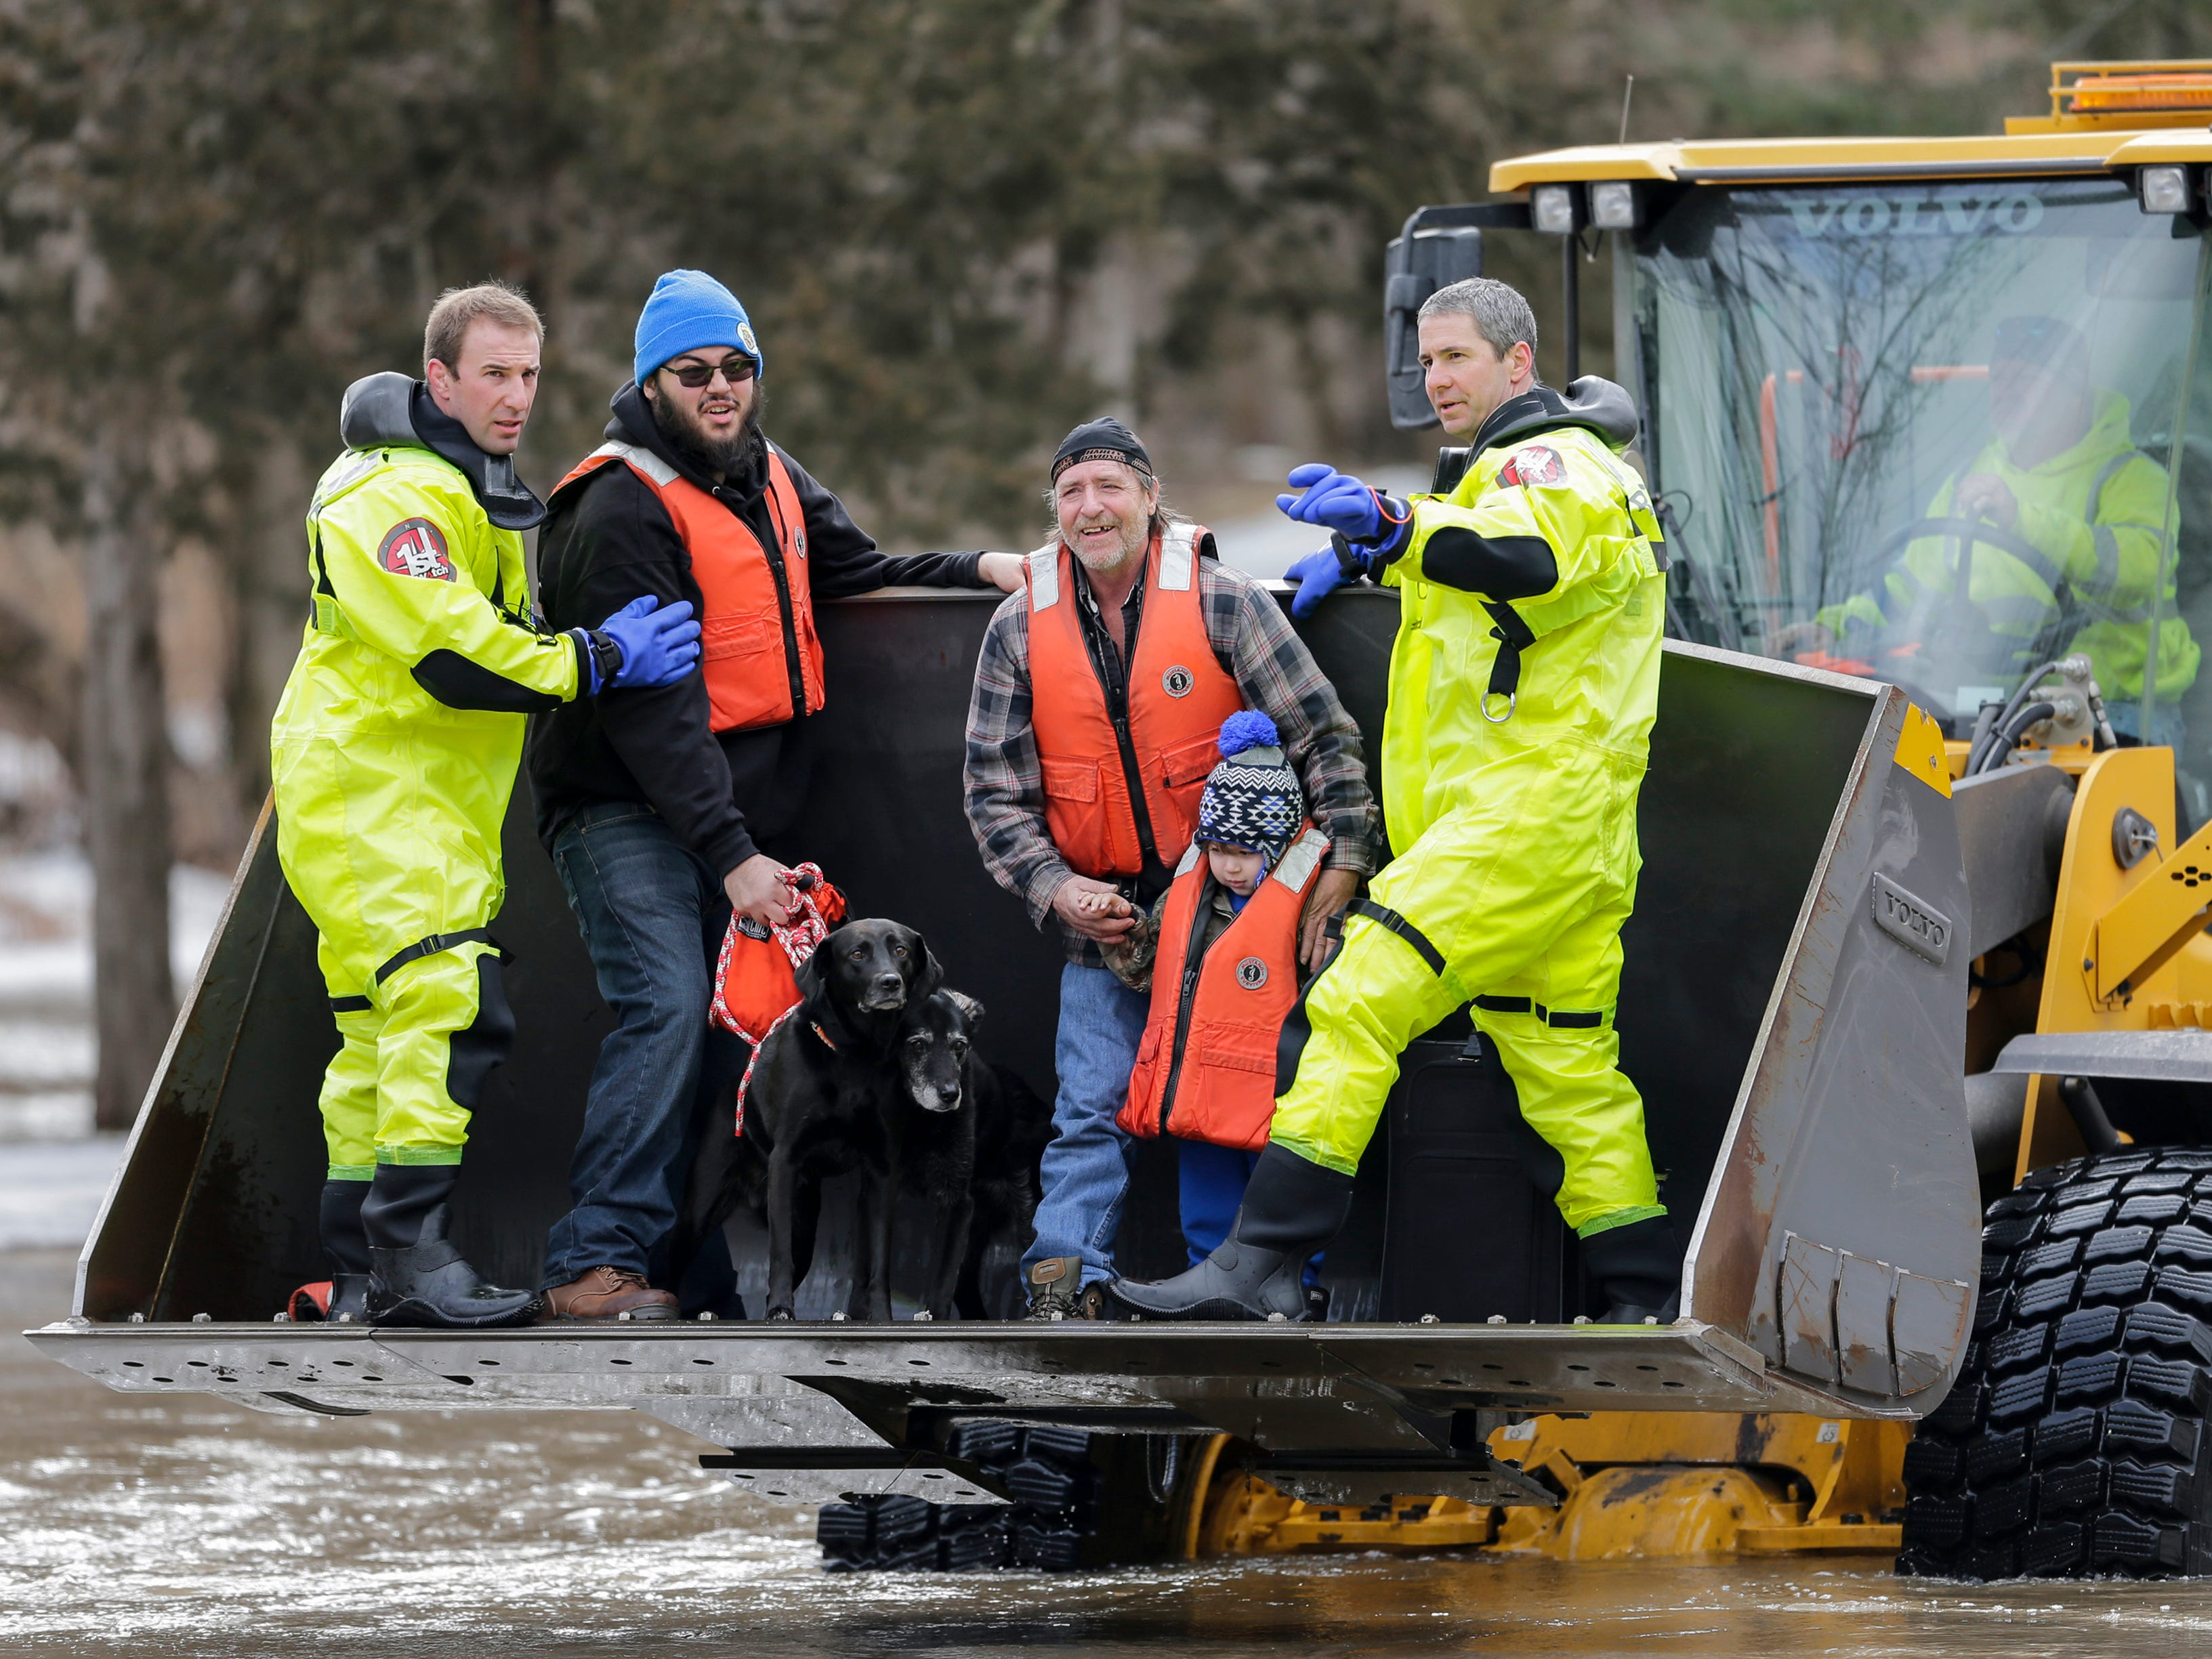 From left, Ethan Perez, Keith Pfeifer and Ean Pennell, 3, are evacuated from their residences in Manitowoc, Wis., by firefighters Kevin Fabian, left, and Garrett Grissom, right, after an ice jam on the Manitowoc River flooded the block Thursday, March 21, 2019.